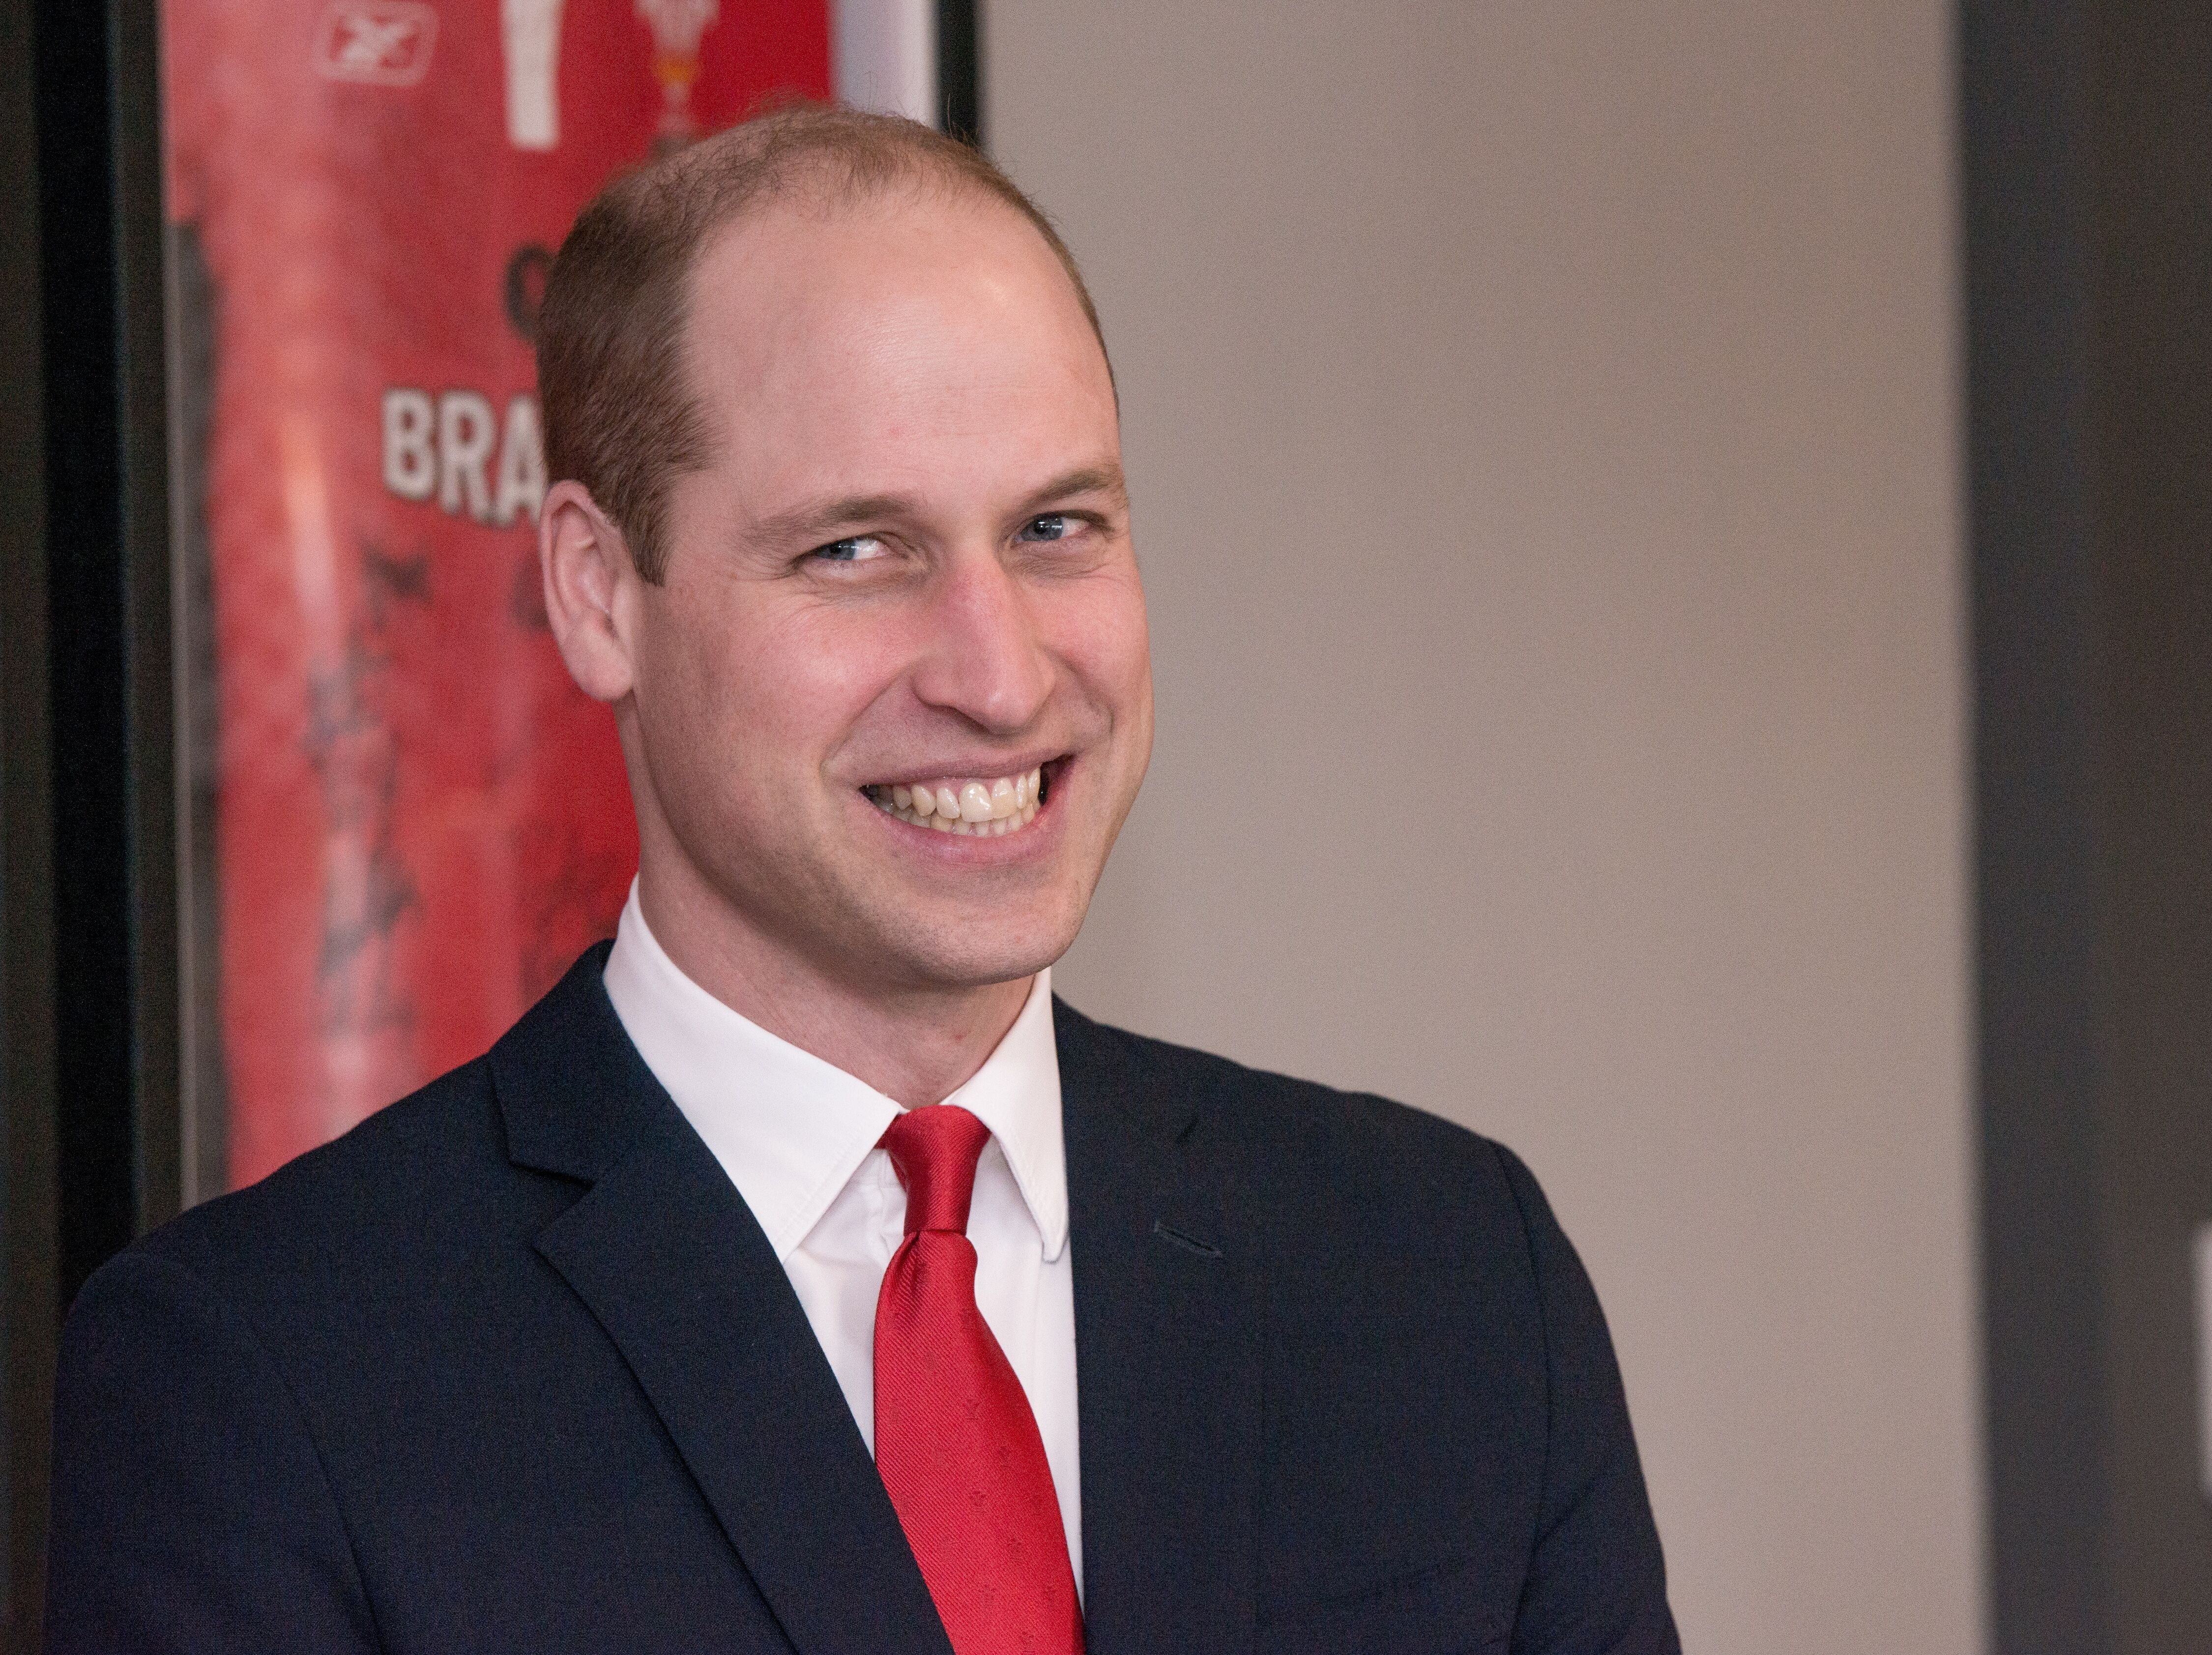 Duke of Cambridge officially opens Brains Brewery, before attending the Wales vs Ireland Six Nations Match on March 16, 2019 in Cardiff, Wales | Photo: Getty Images